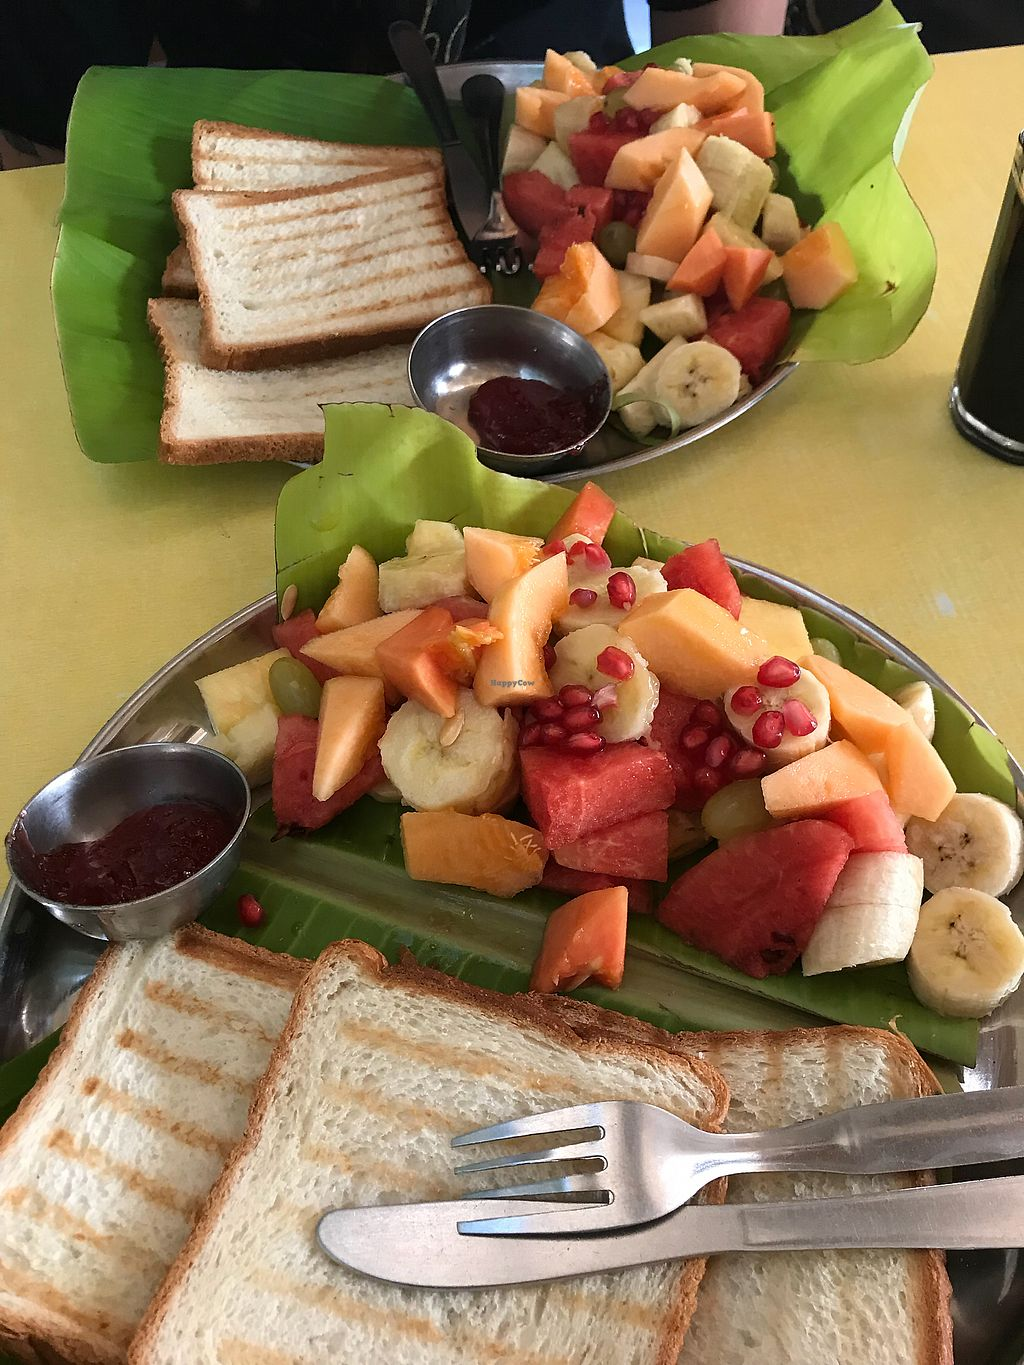 "Photo of Mango Tree  by <a href=""/members/profile/Shannybadds"">Shannybadds</a> <br/>Spanish Breakfast - no eggs & extra fruit  <br/> March 25, 2018  - <a href='/contact/abuse/image/41182/375722'>Report</a>"